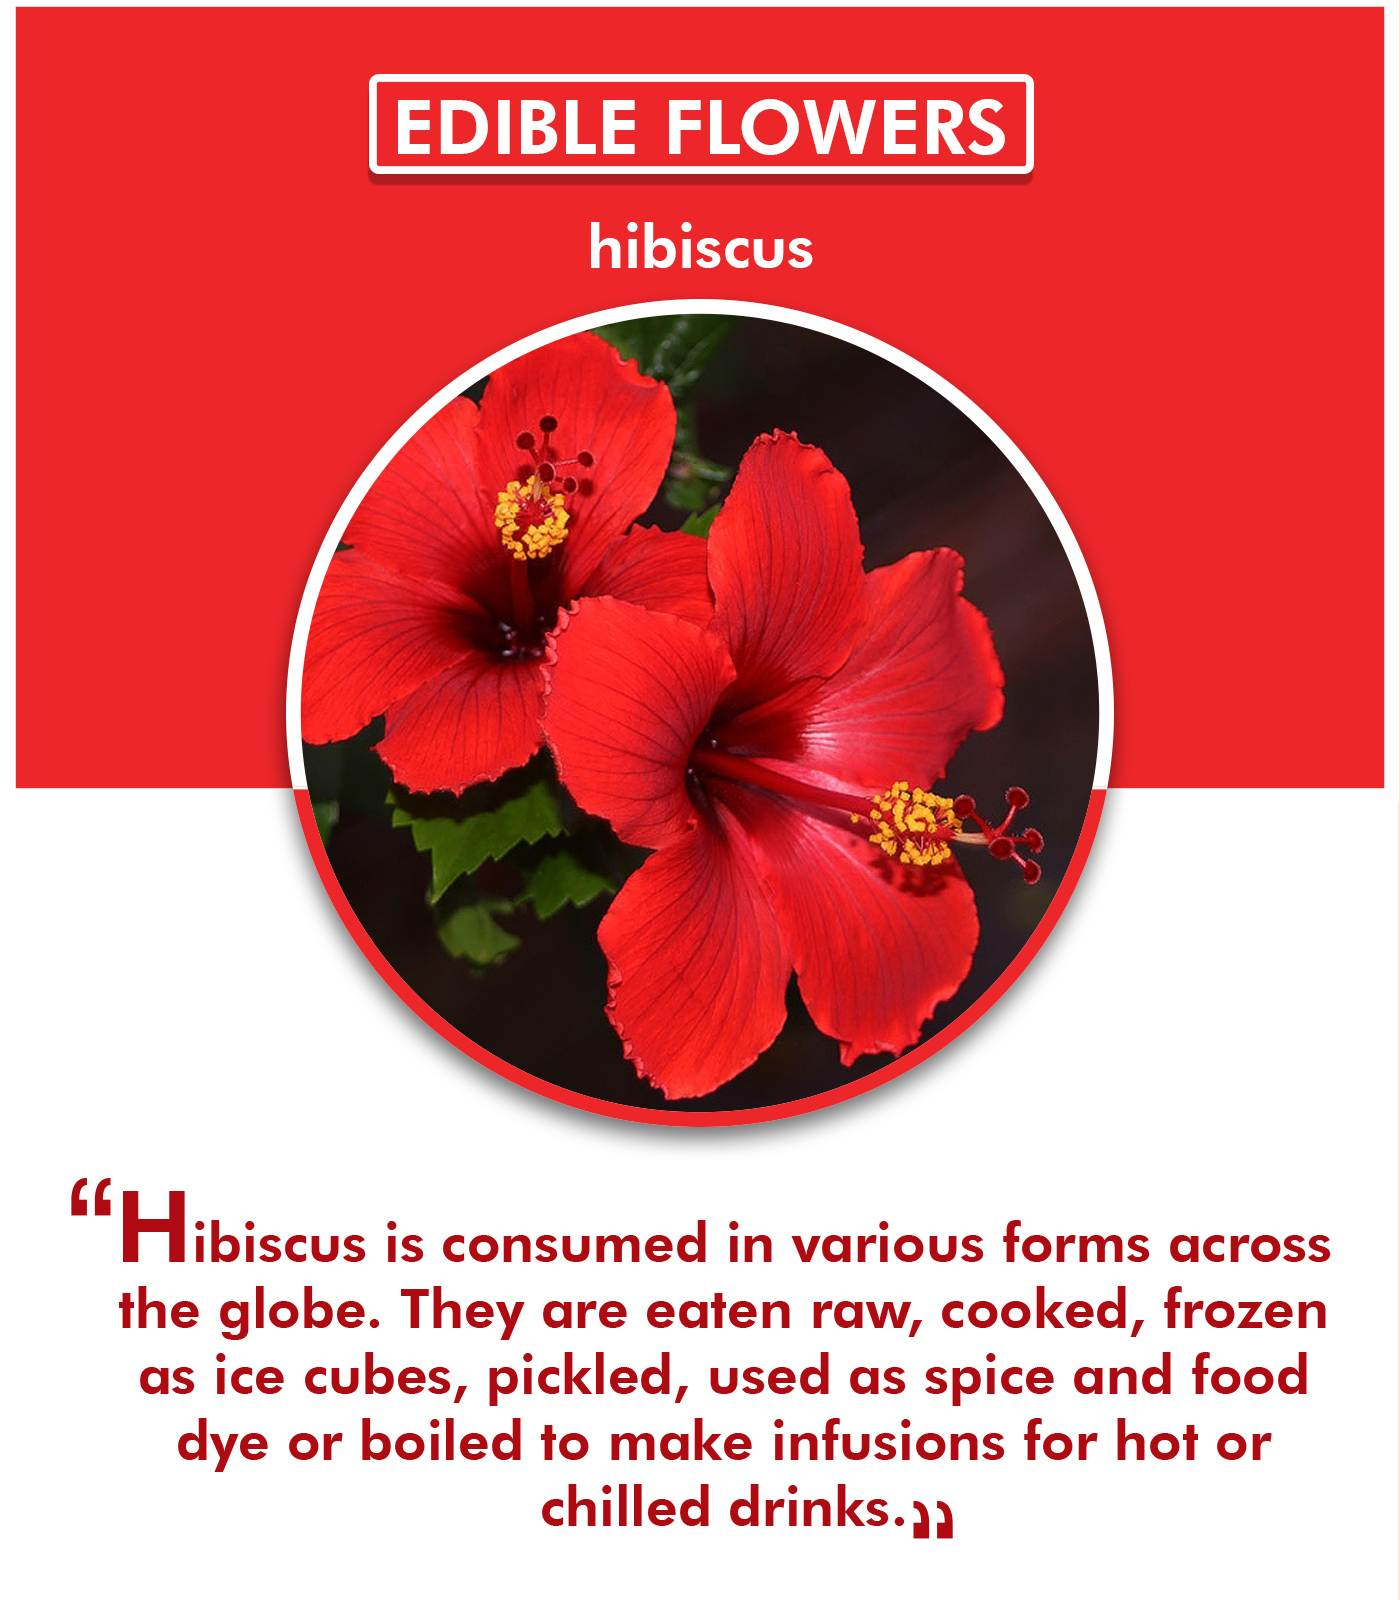 5 Edible Flowers That Can Make Exotic Food Ingridients